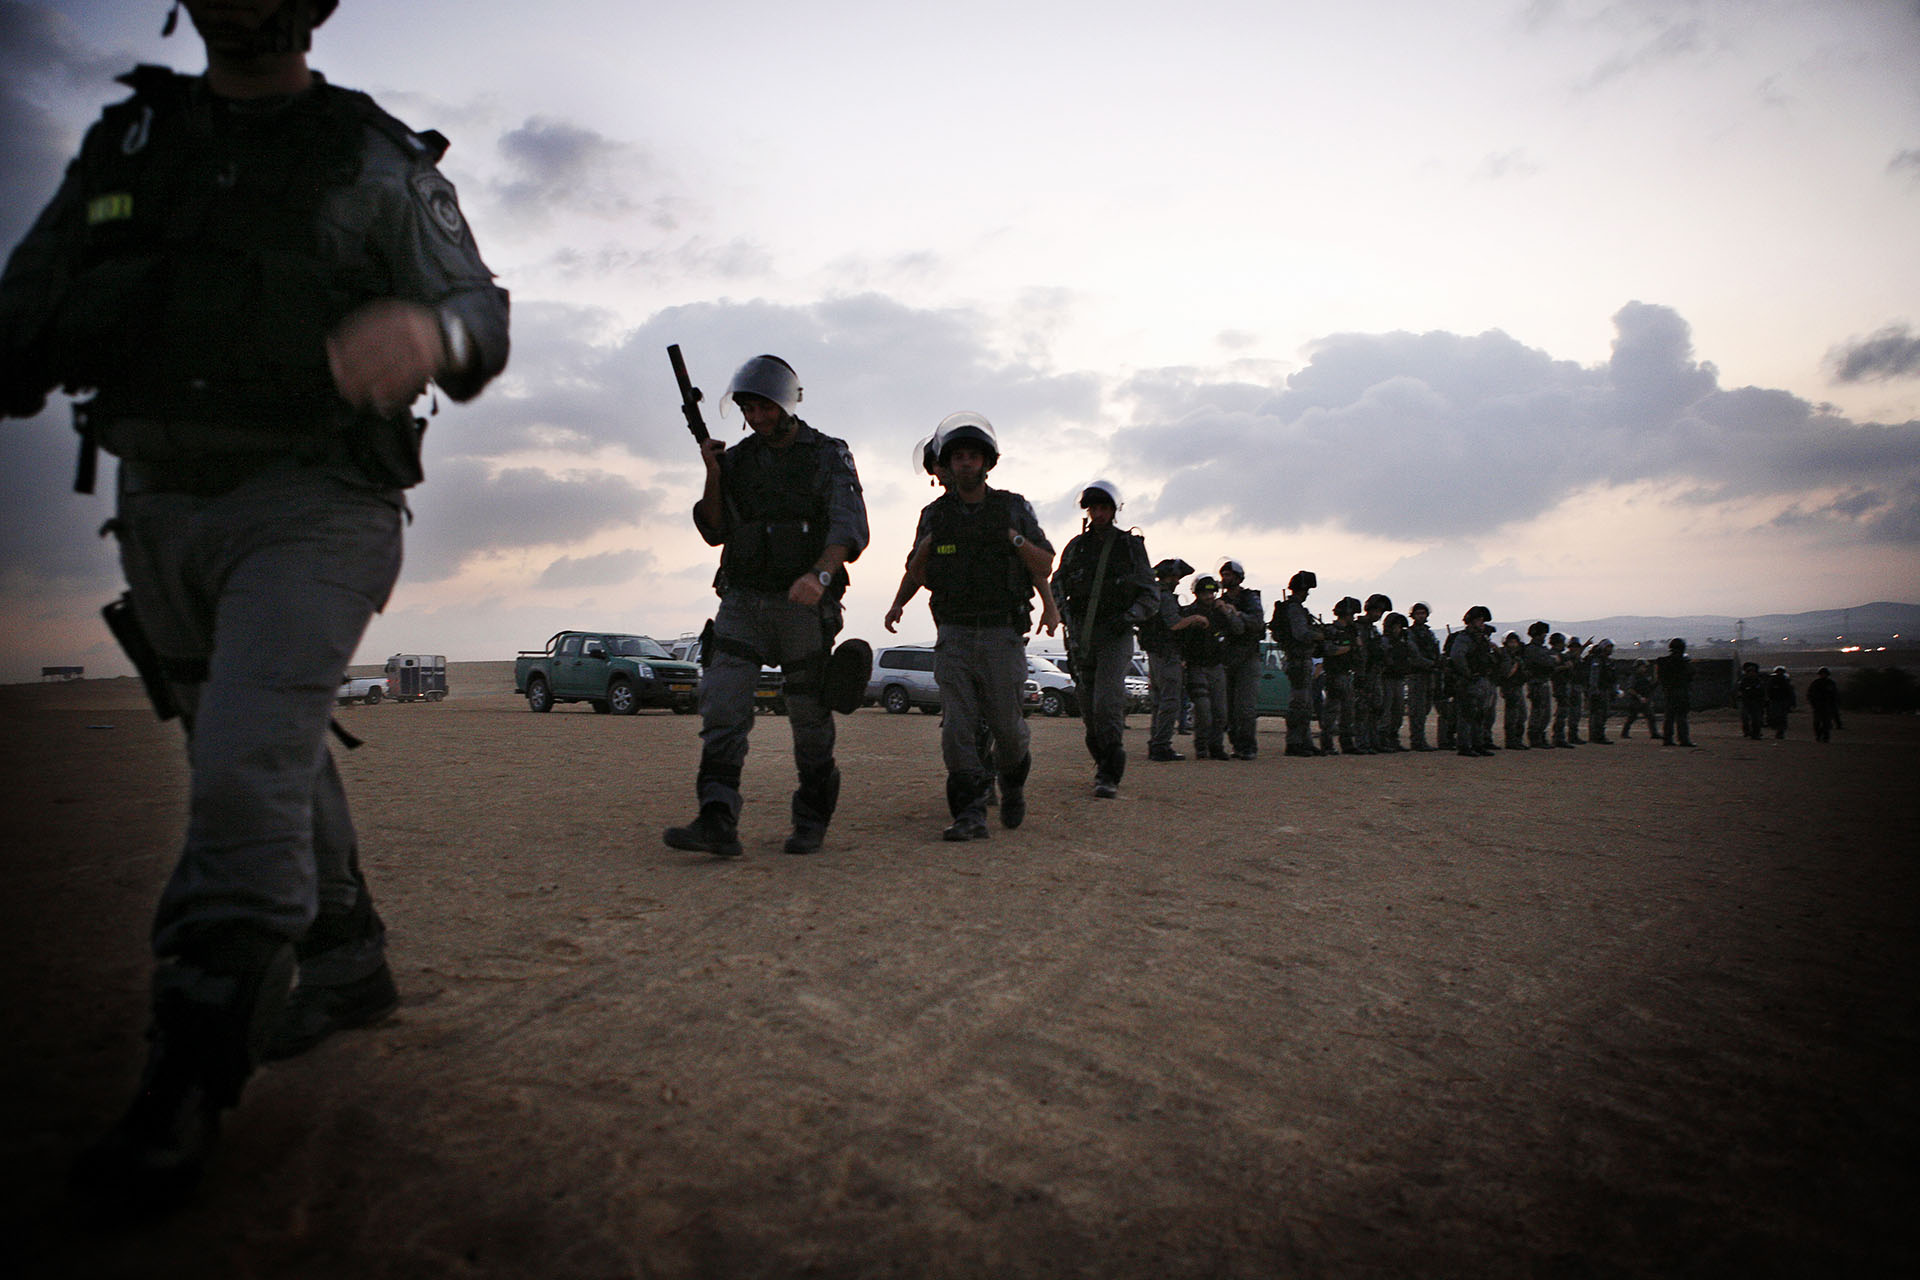 Israeli police officers enter Al Araqib to raze it to the ground. The first demolition happened on 27 July 2010. The state maintains the Al Turi are occupying land that is not theirs, while the Al Turi have historical documents proving their ties to the land. The legal fight is ongoing and so are the demolitions. September 2009